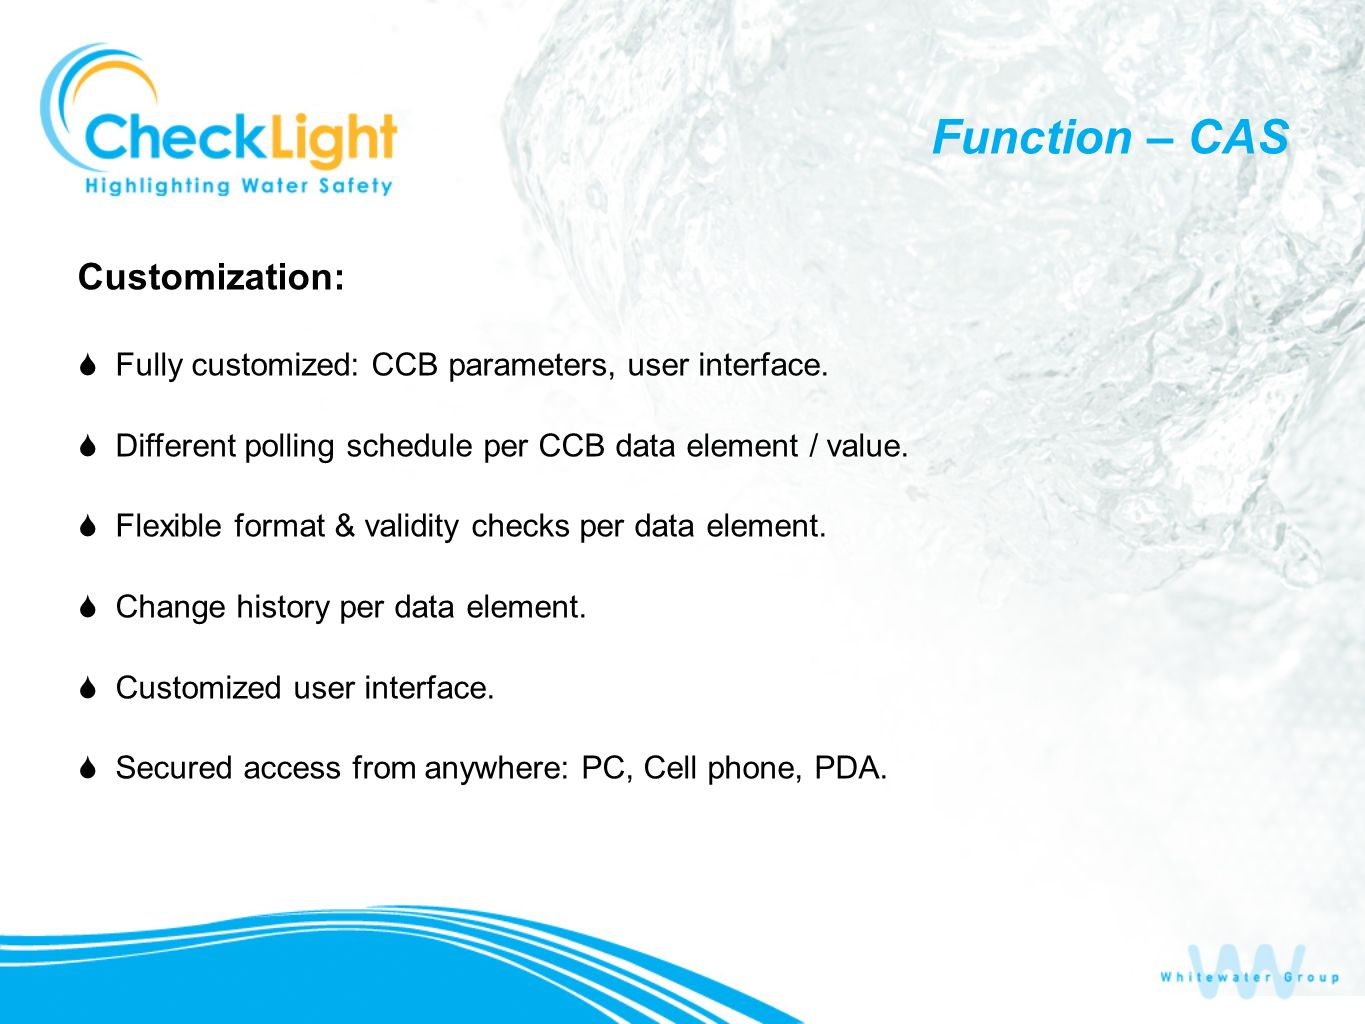 Customization: Fully customized: CCB parameters, user interface.